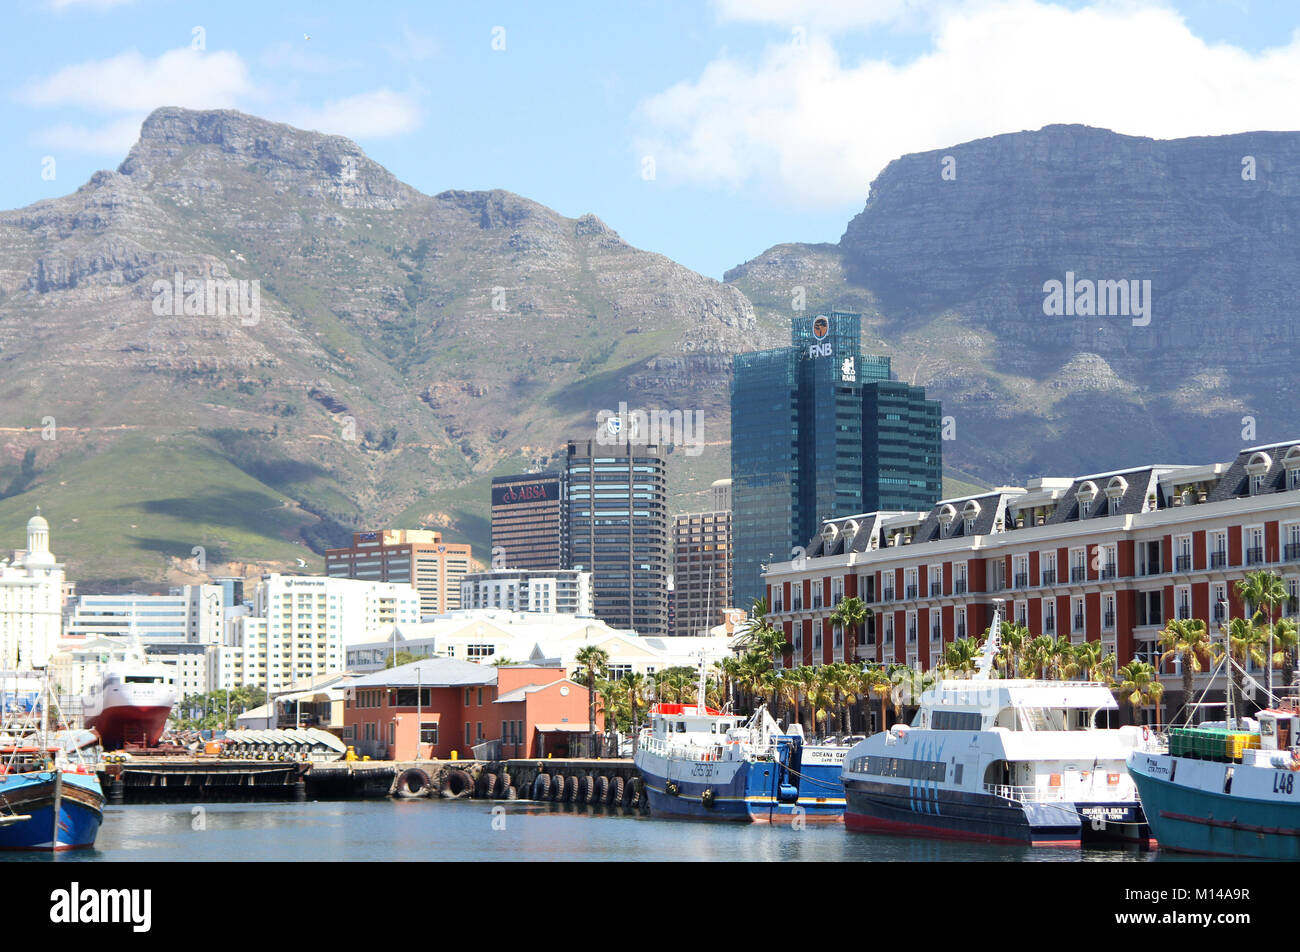 V&A Waterfront, view of banks, Portside, Table Mountain, Devil's Peak, boats and Cape Grace Hotel, Cape - Stock Image